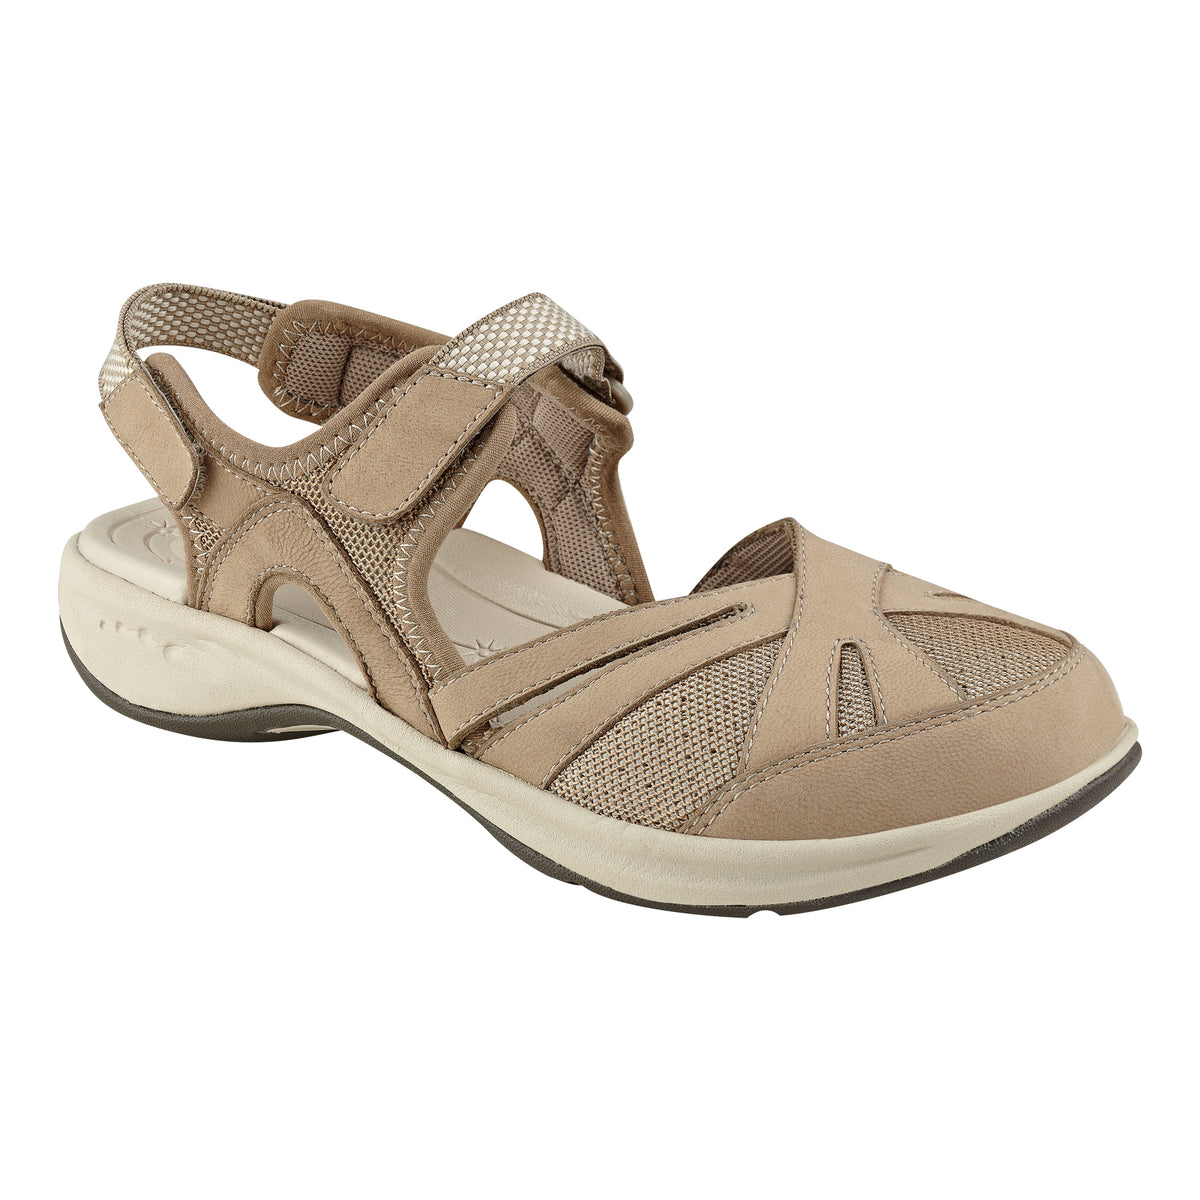 Splash Nubuck Flat Hiking Sandals